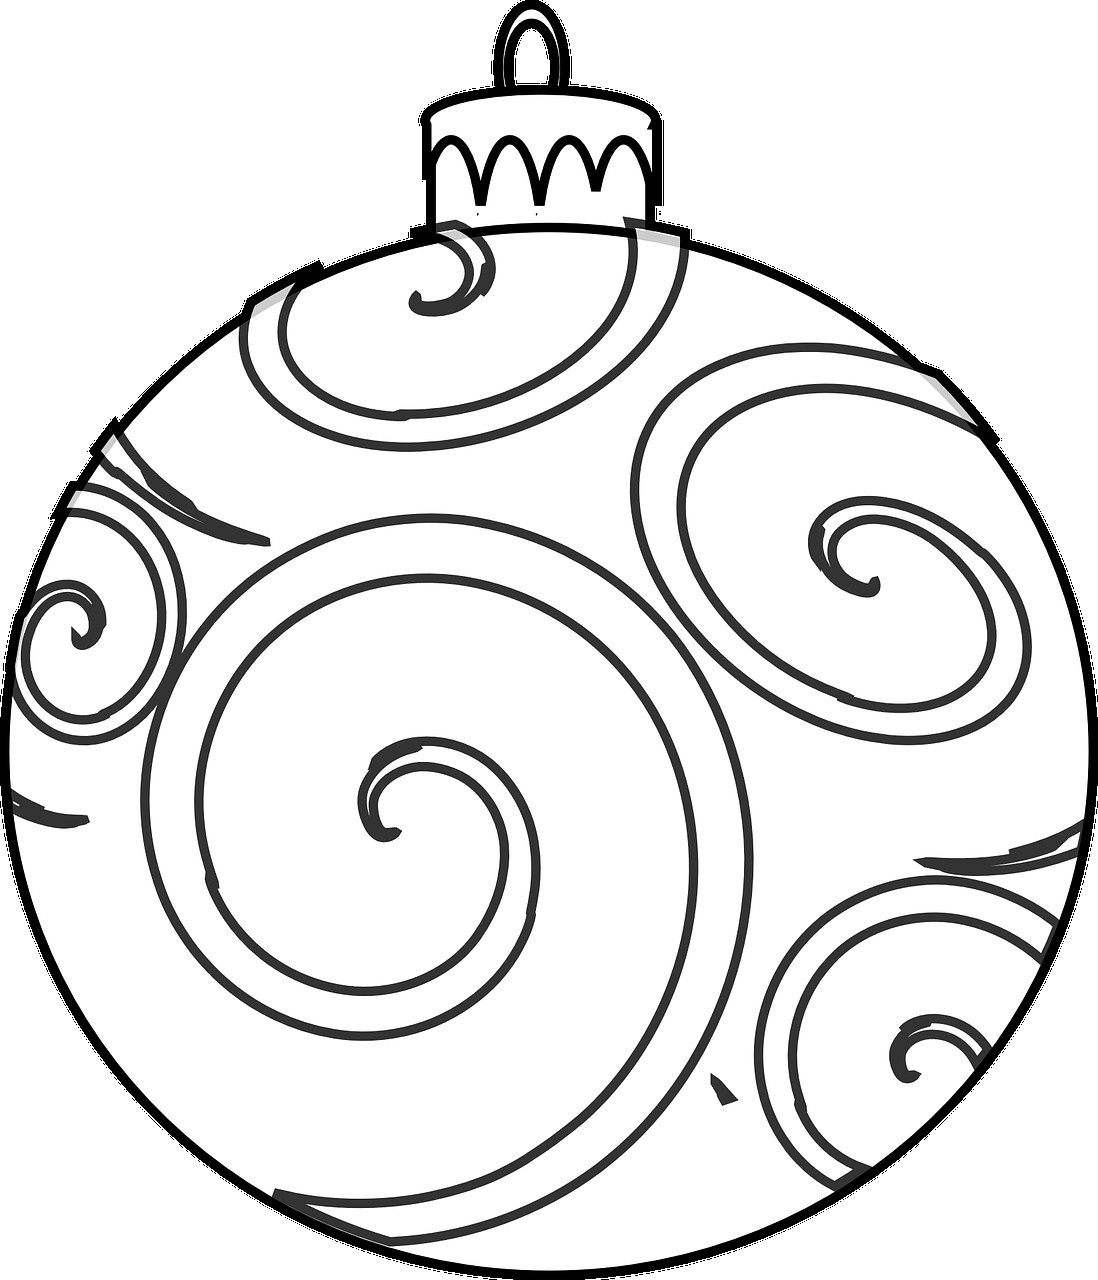 Christmas Coloring Pages Ornaments Printable With Ornament Download For Kids